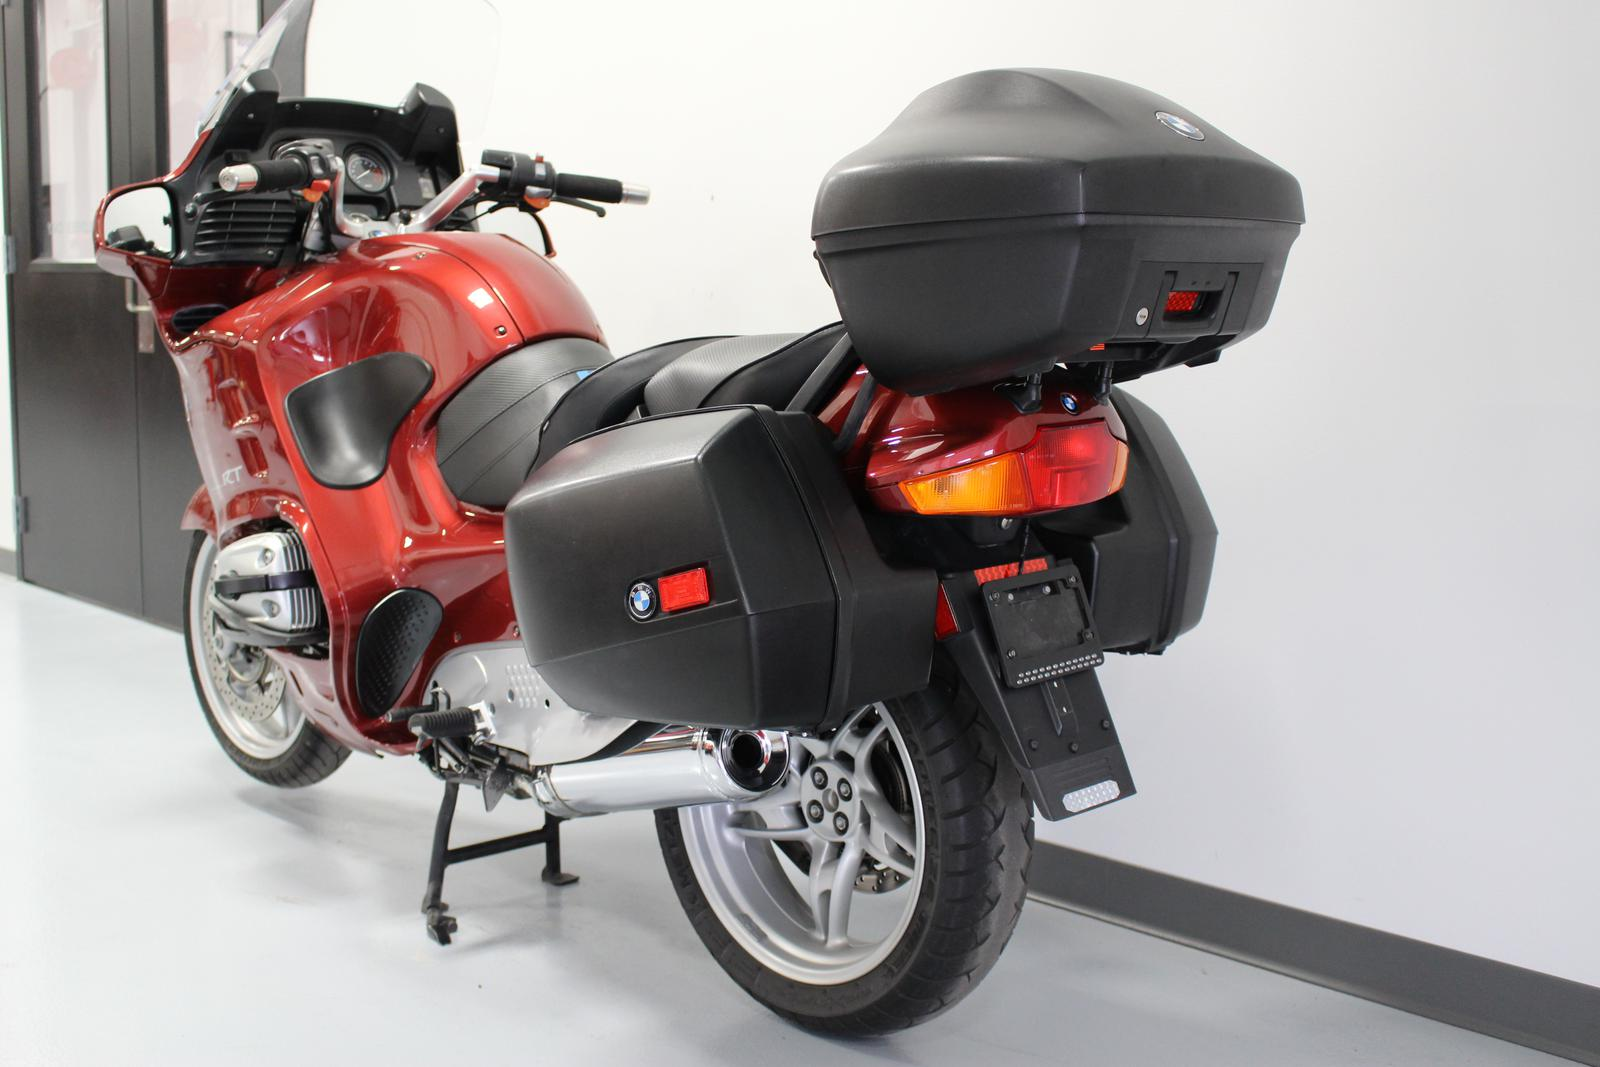 2004 BMW R 1150 RT Sport Touring Motorcycle From De Pere ...